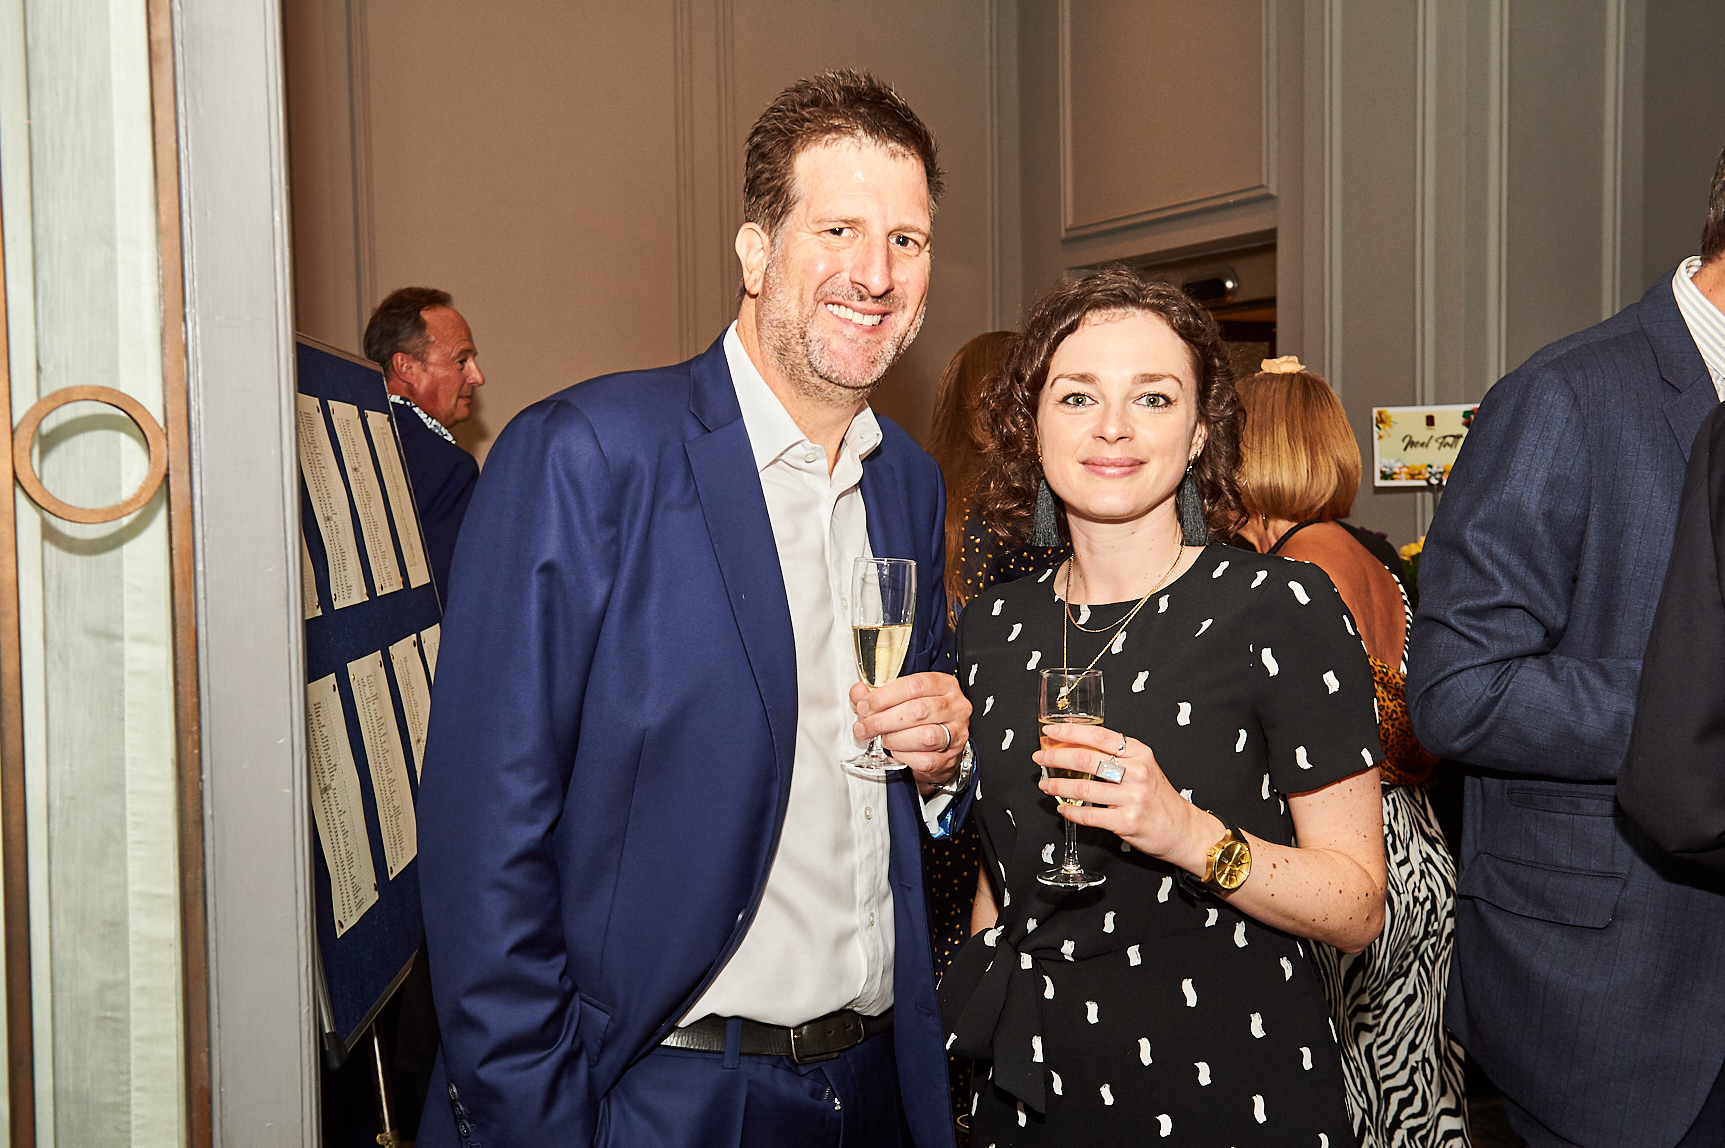 Above: David Byk, ceo of Swan Mill with Ling's marketing manager Amelia Strawson at the recent Retas awards.